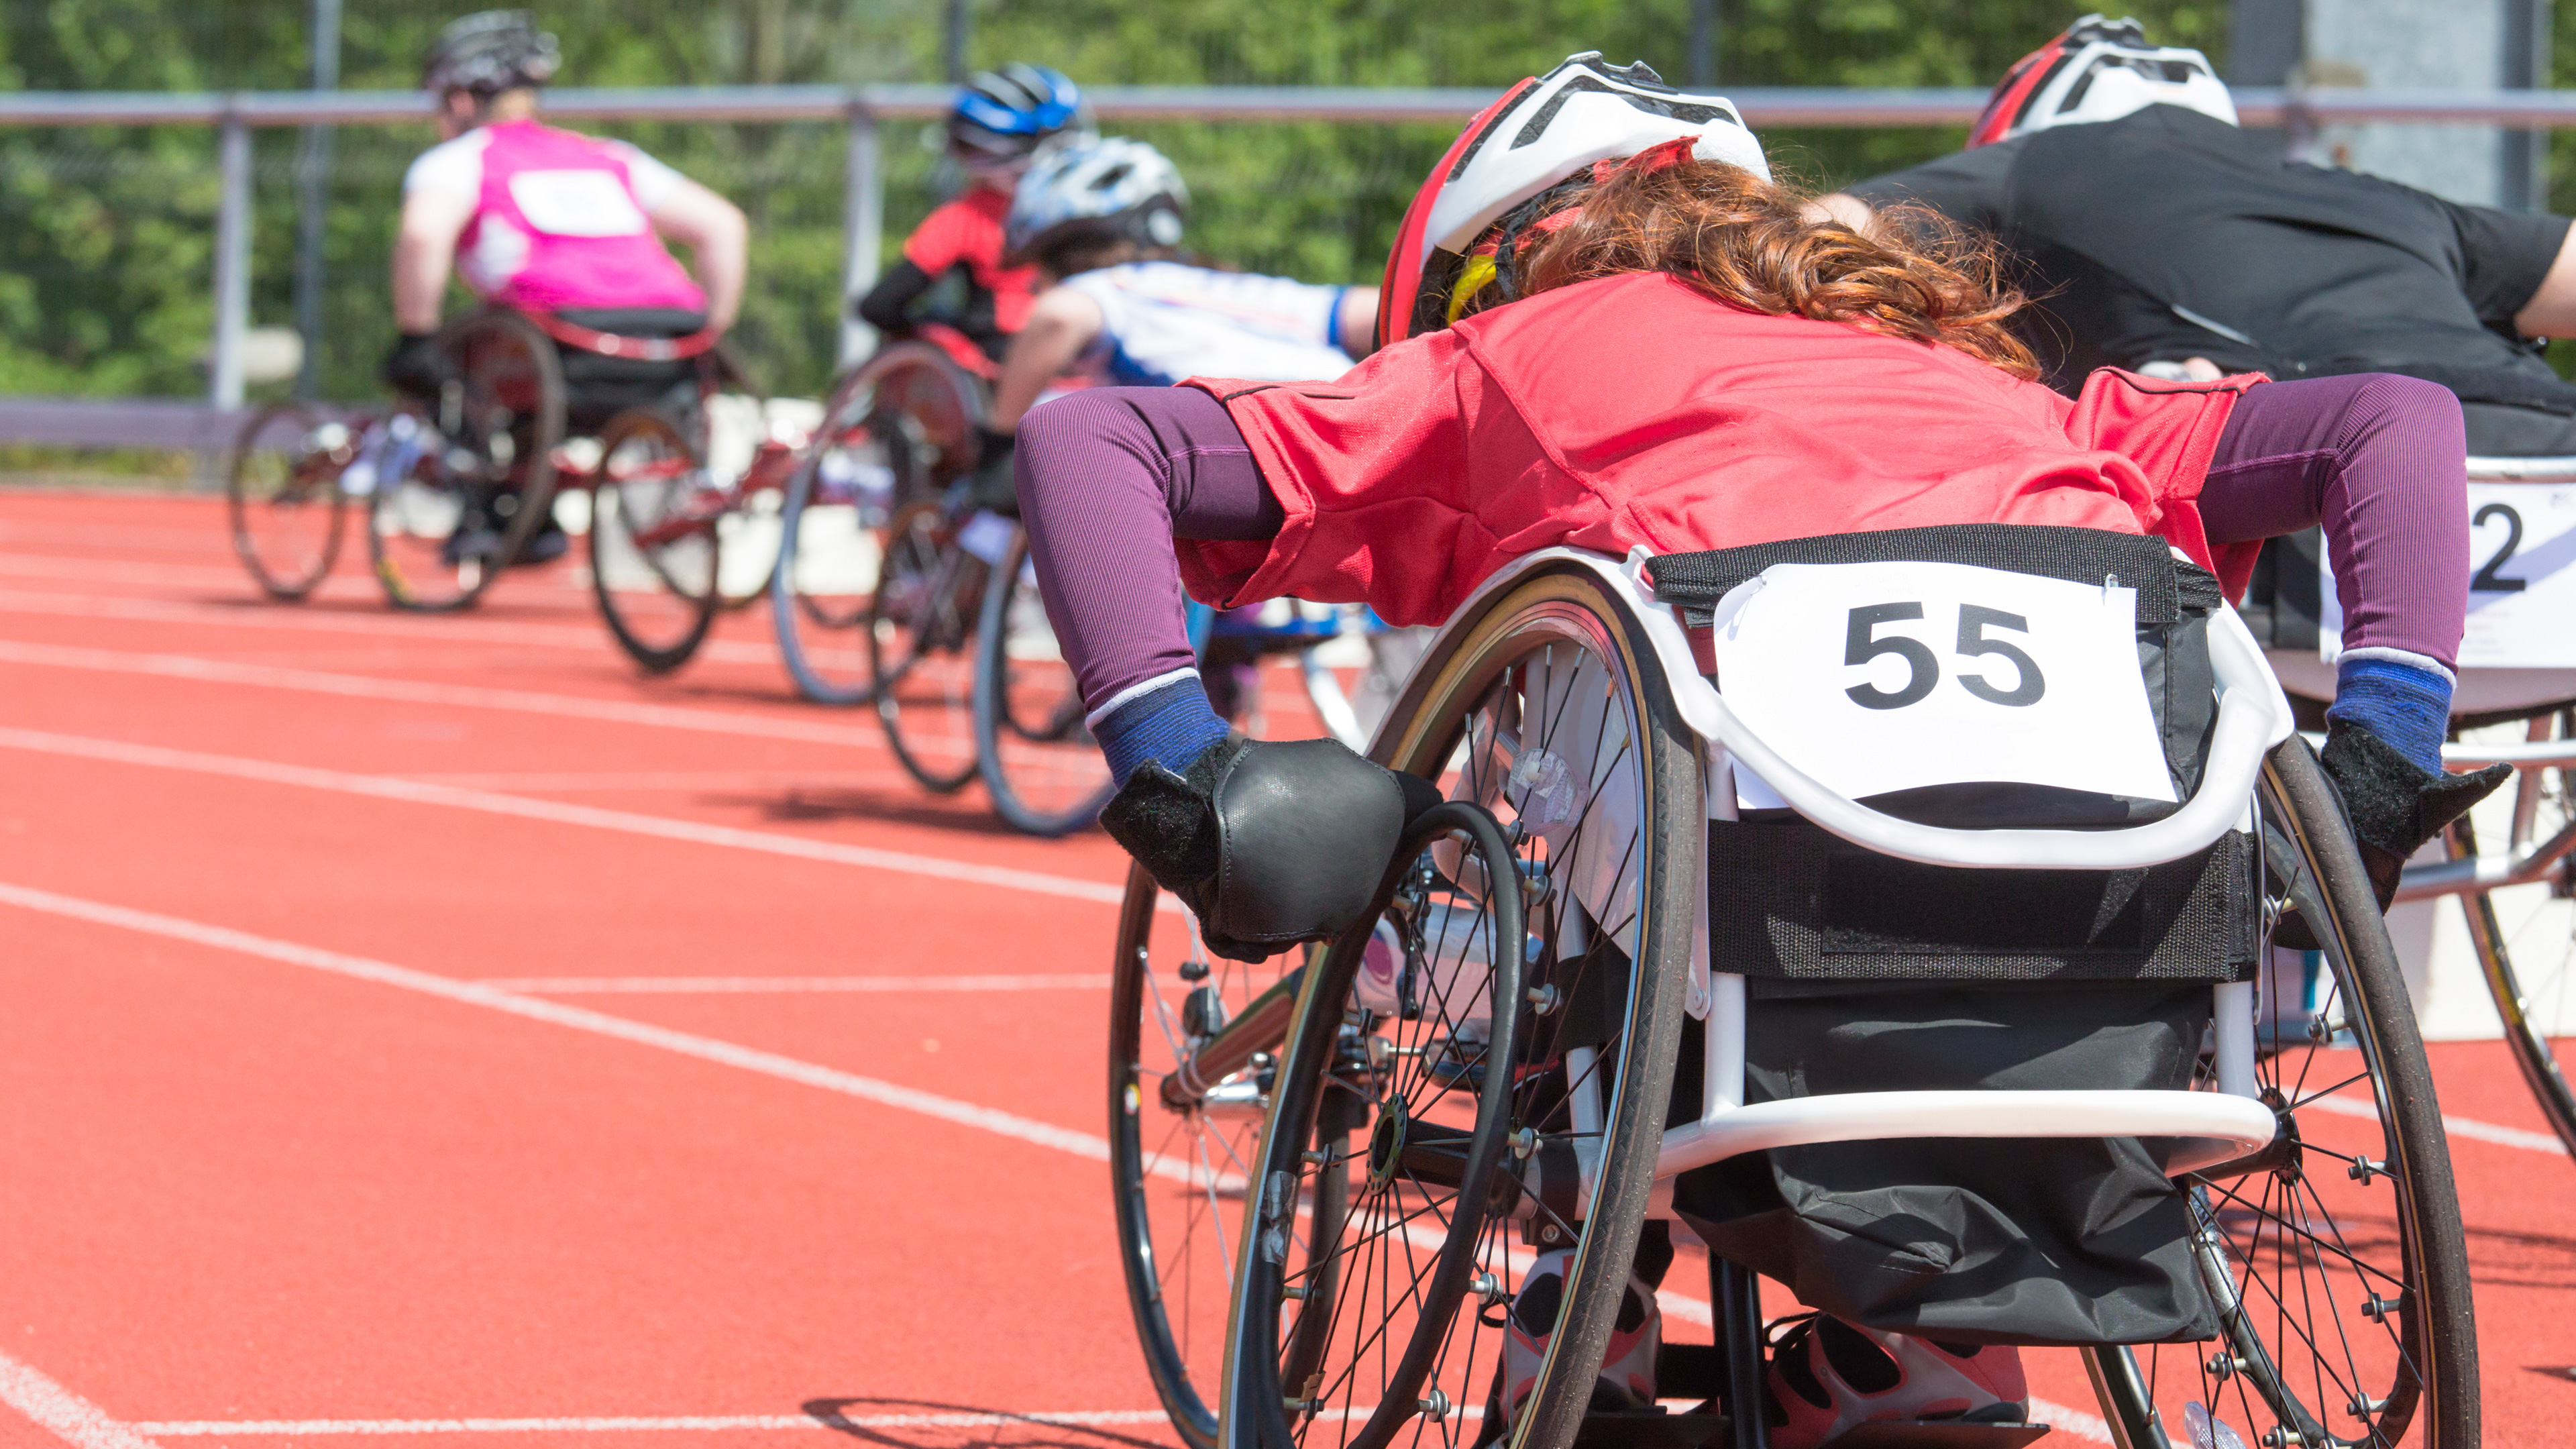 Advocate Eli Wolff The Disabled Athlete Is Still Siloed